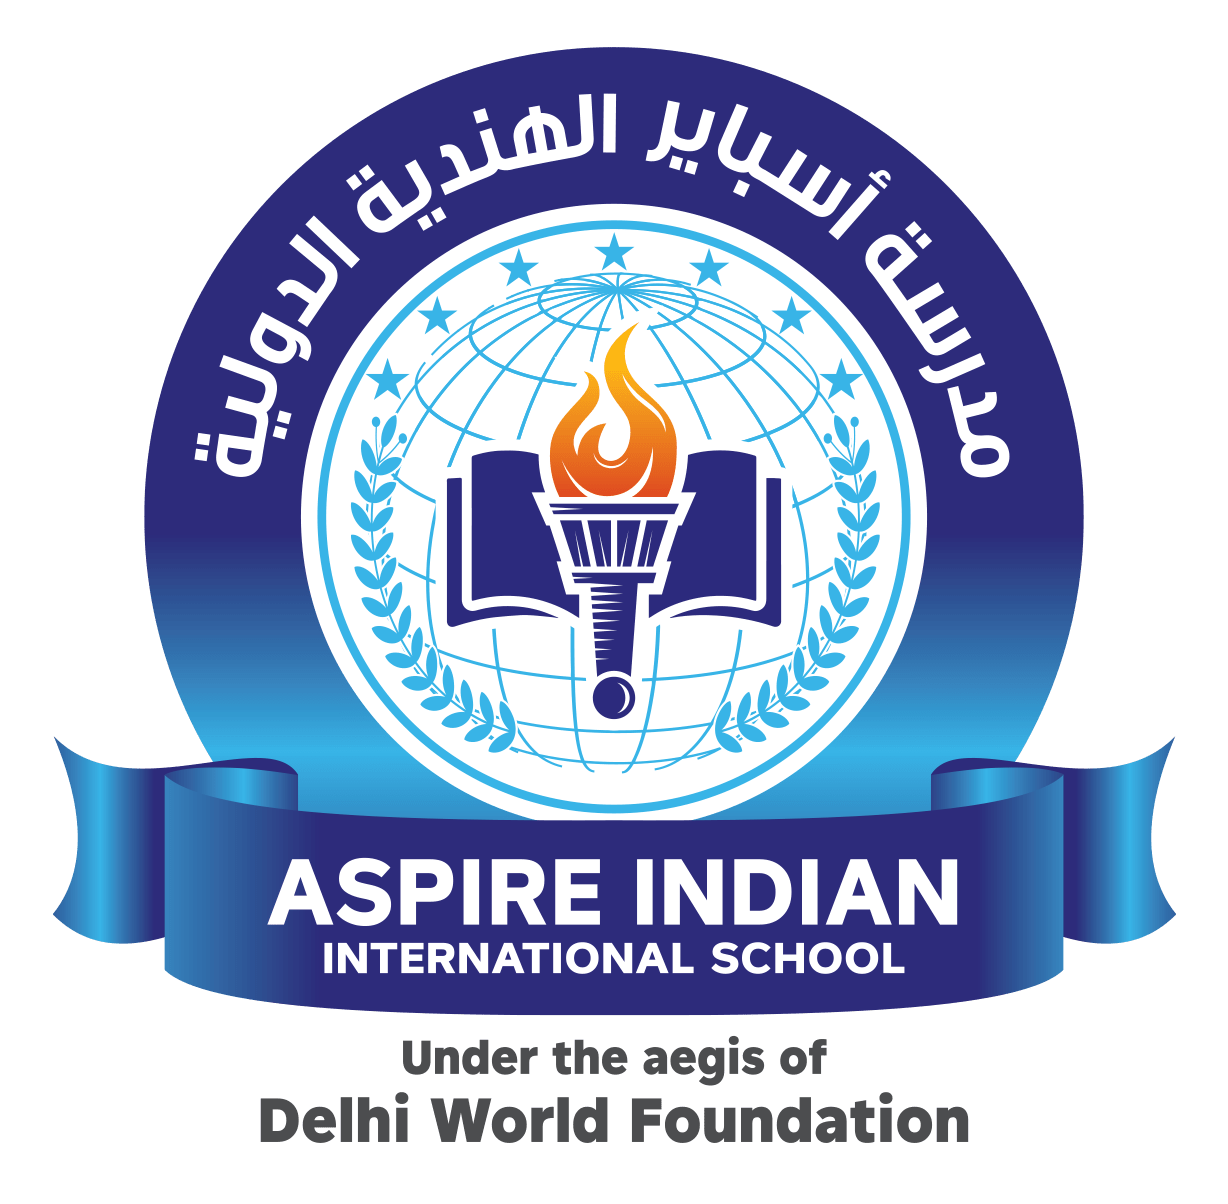 Aspire Indian International School